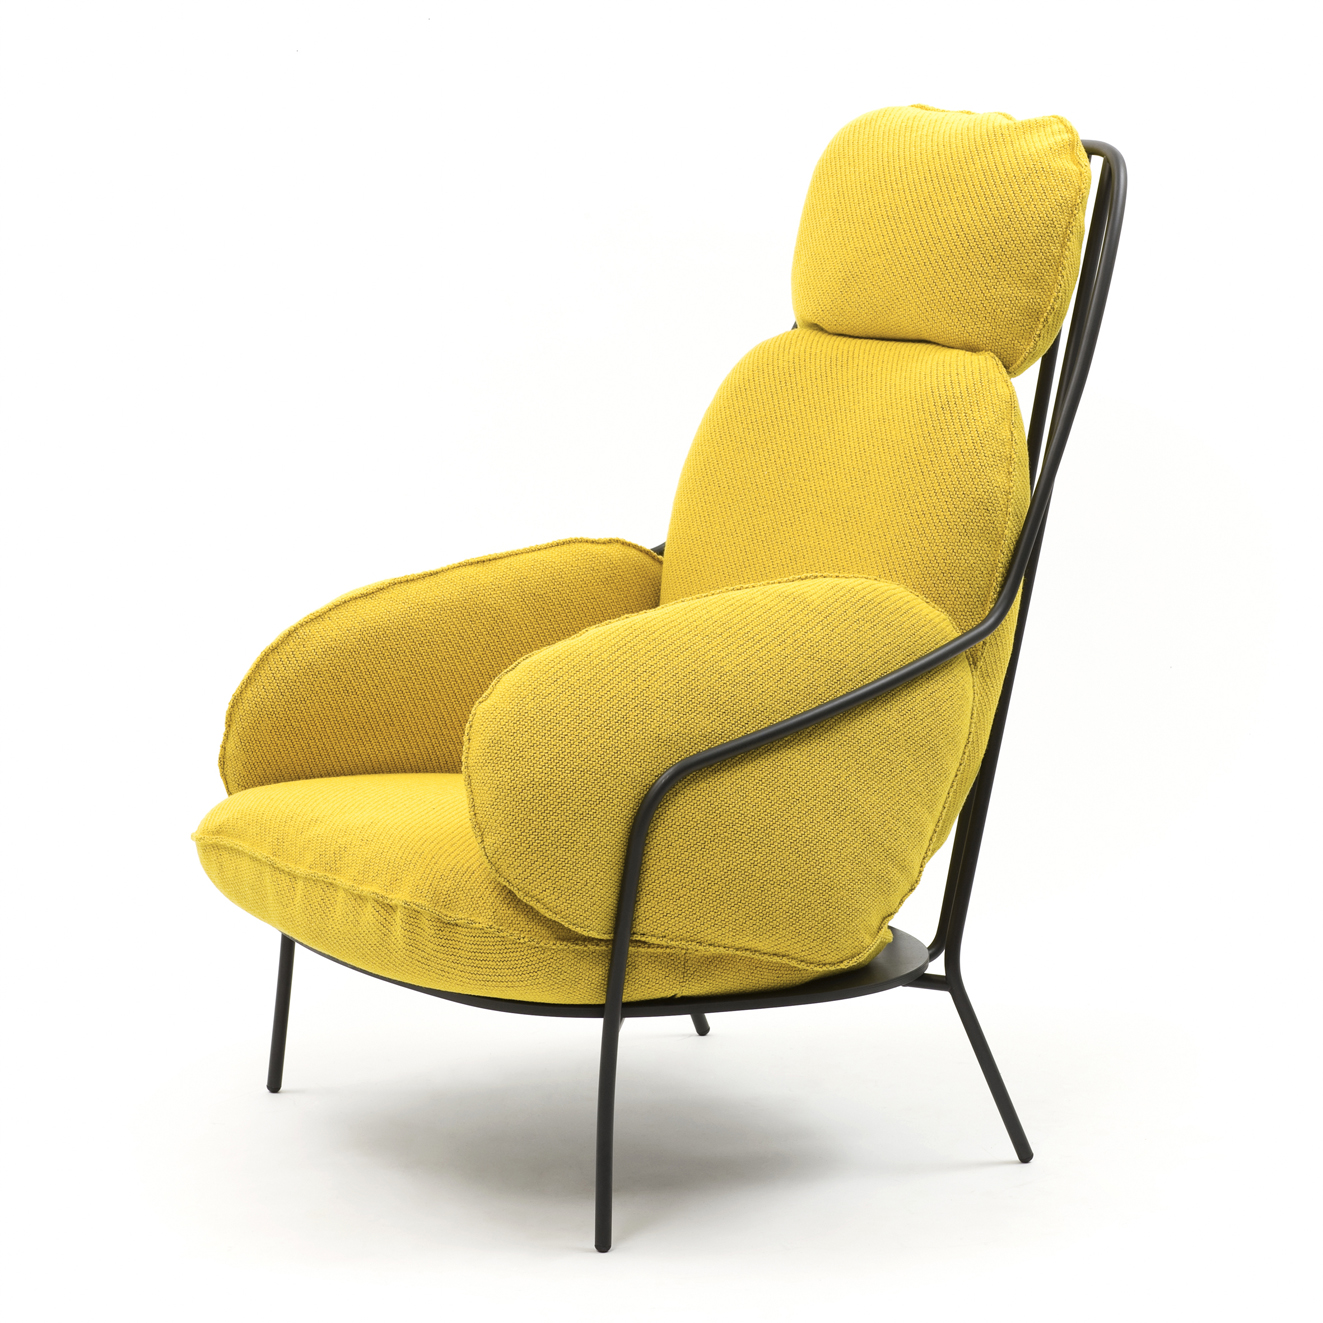 Paffuta Lounge Chair. Design by Luca Nichetto.